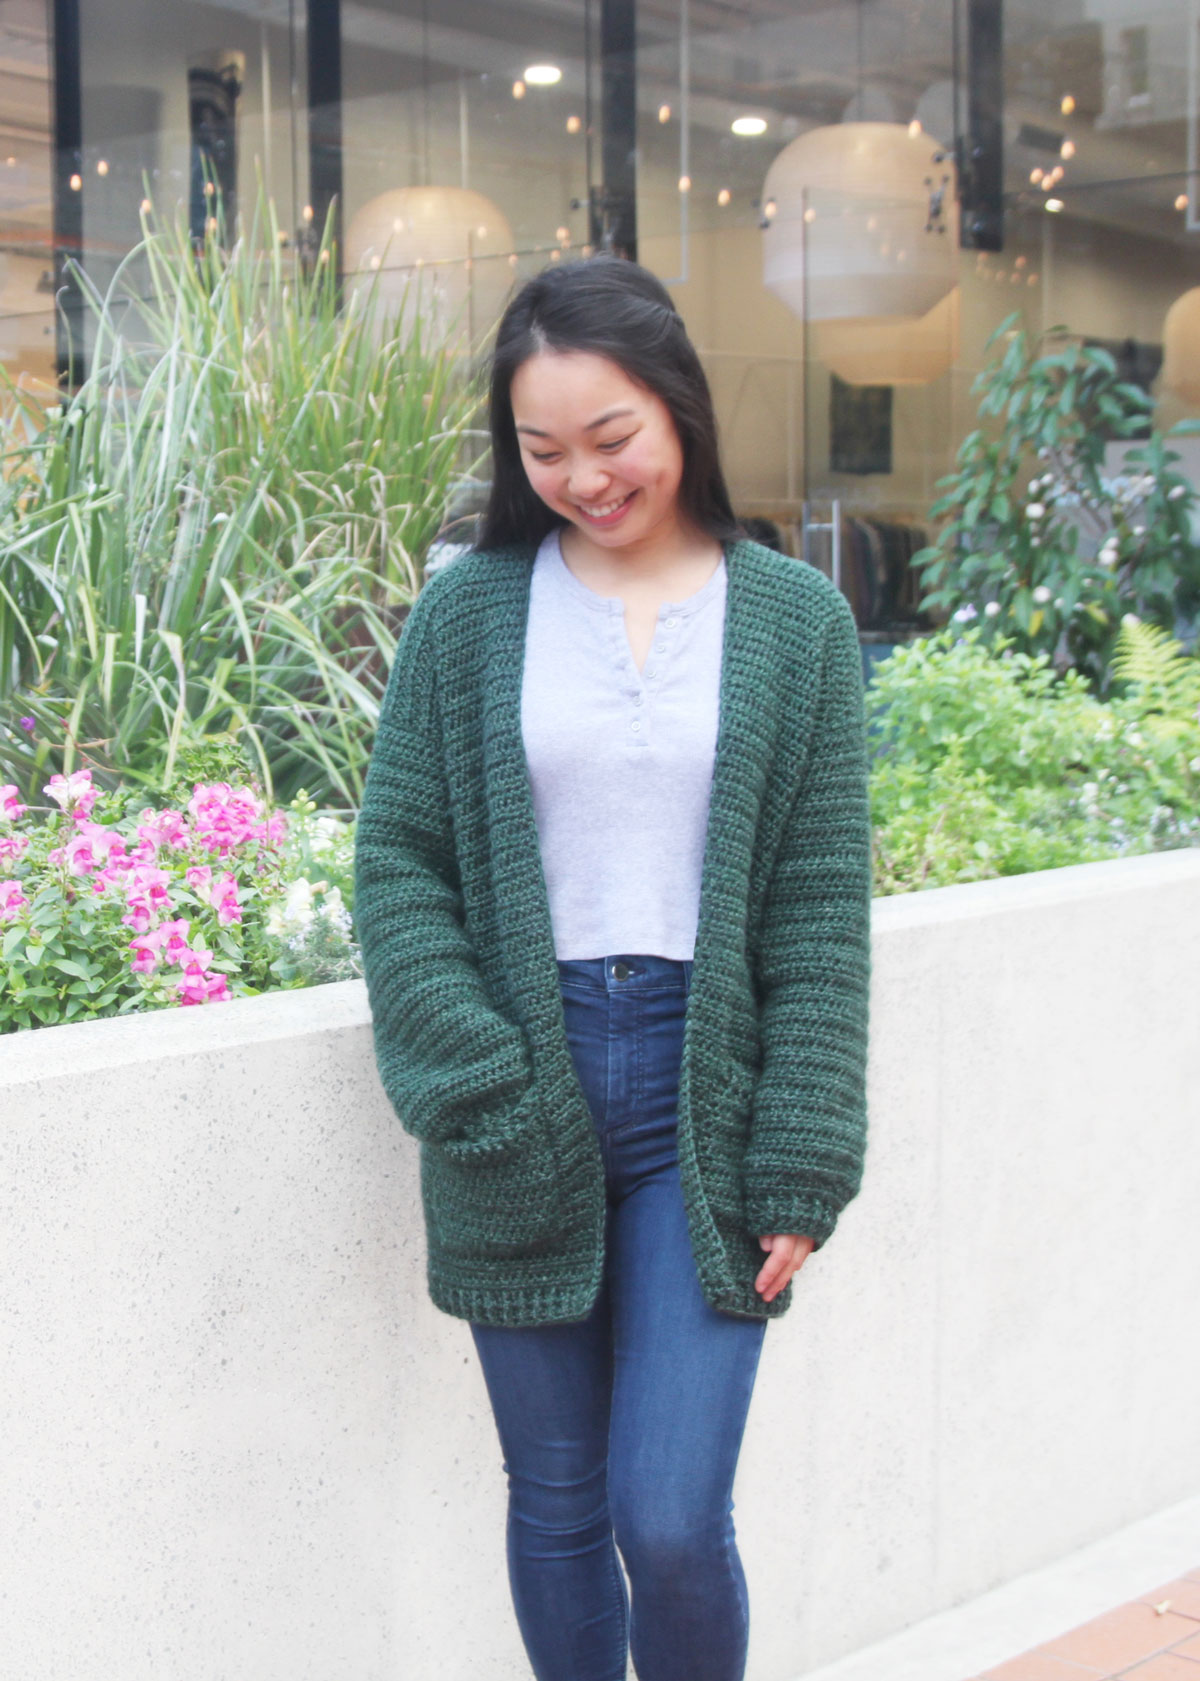 loose crochet cardigan with pockets and jeans